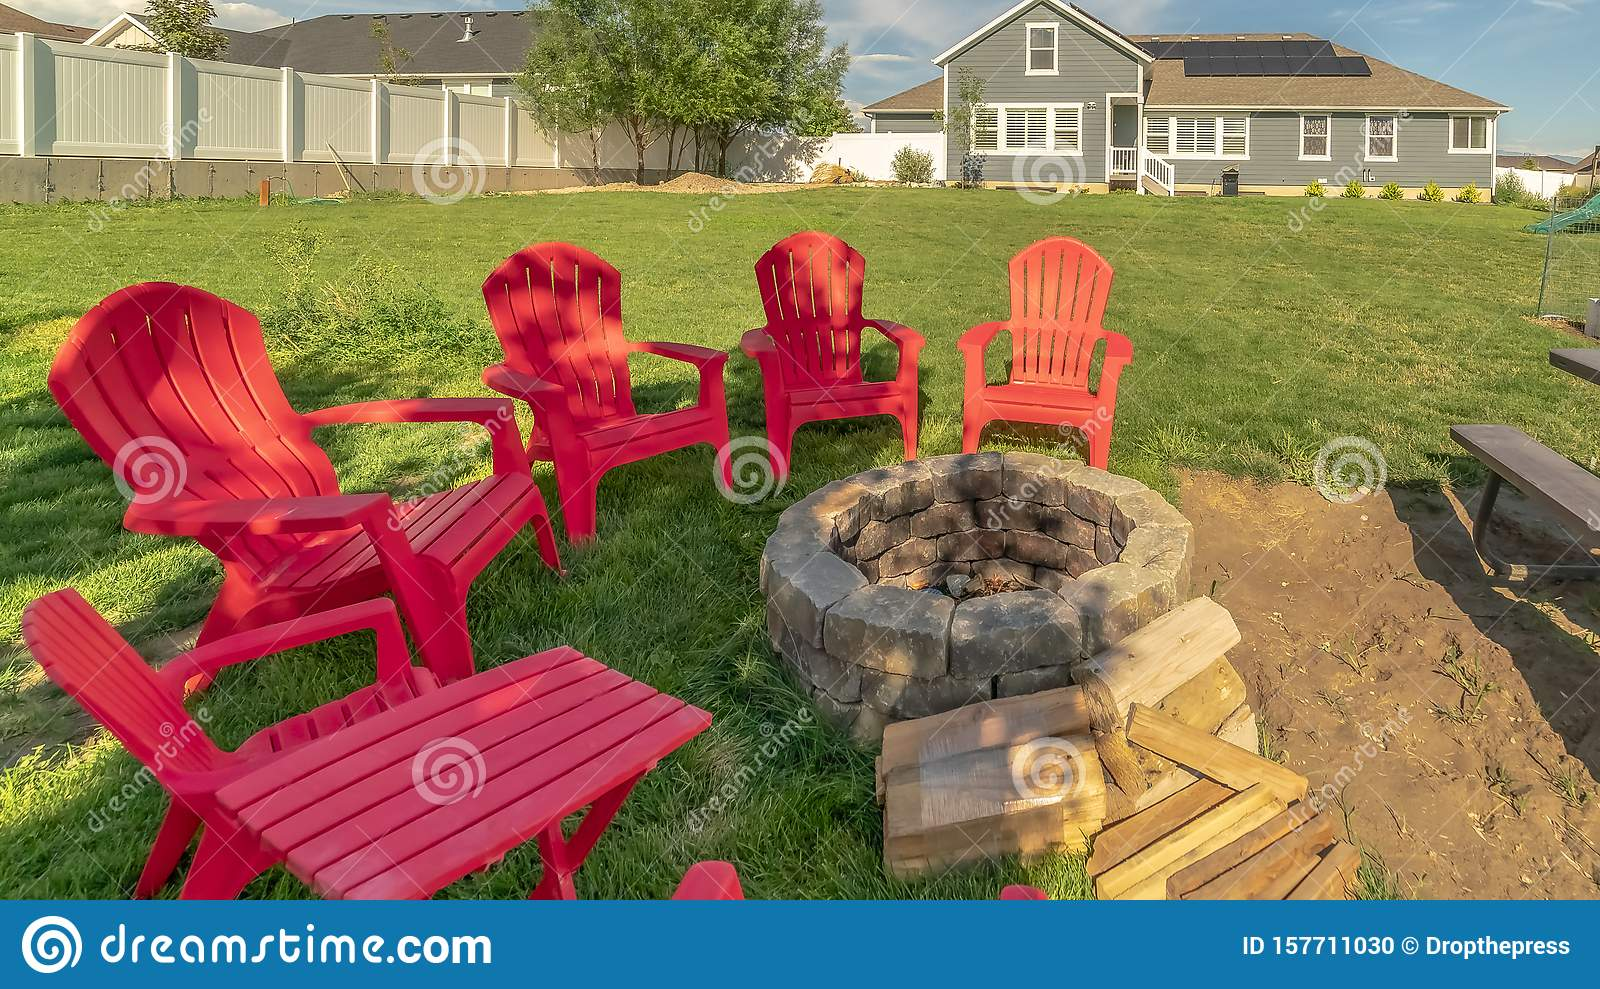 Panorama Red Outdoor Chairs And Picnic Table With Bench Around A Circular Stone Fire Pit Stock Photo Image Of Grass Seat 157711030